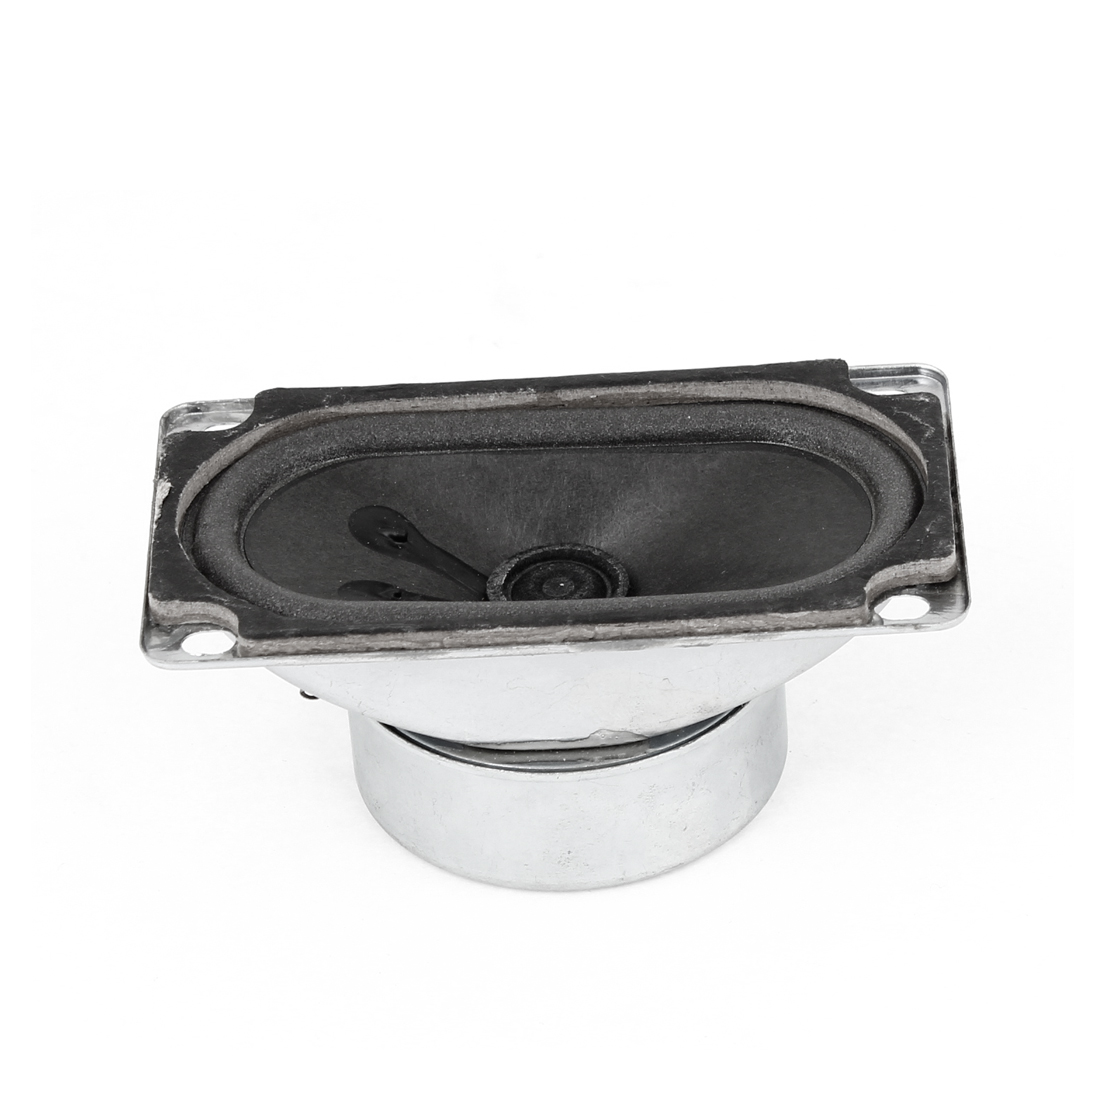 Vehicle Car Spare Part 90mm x 50mm Square Mount LCD TV Speaker 10W 4 Ohm